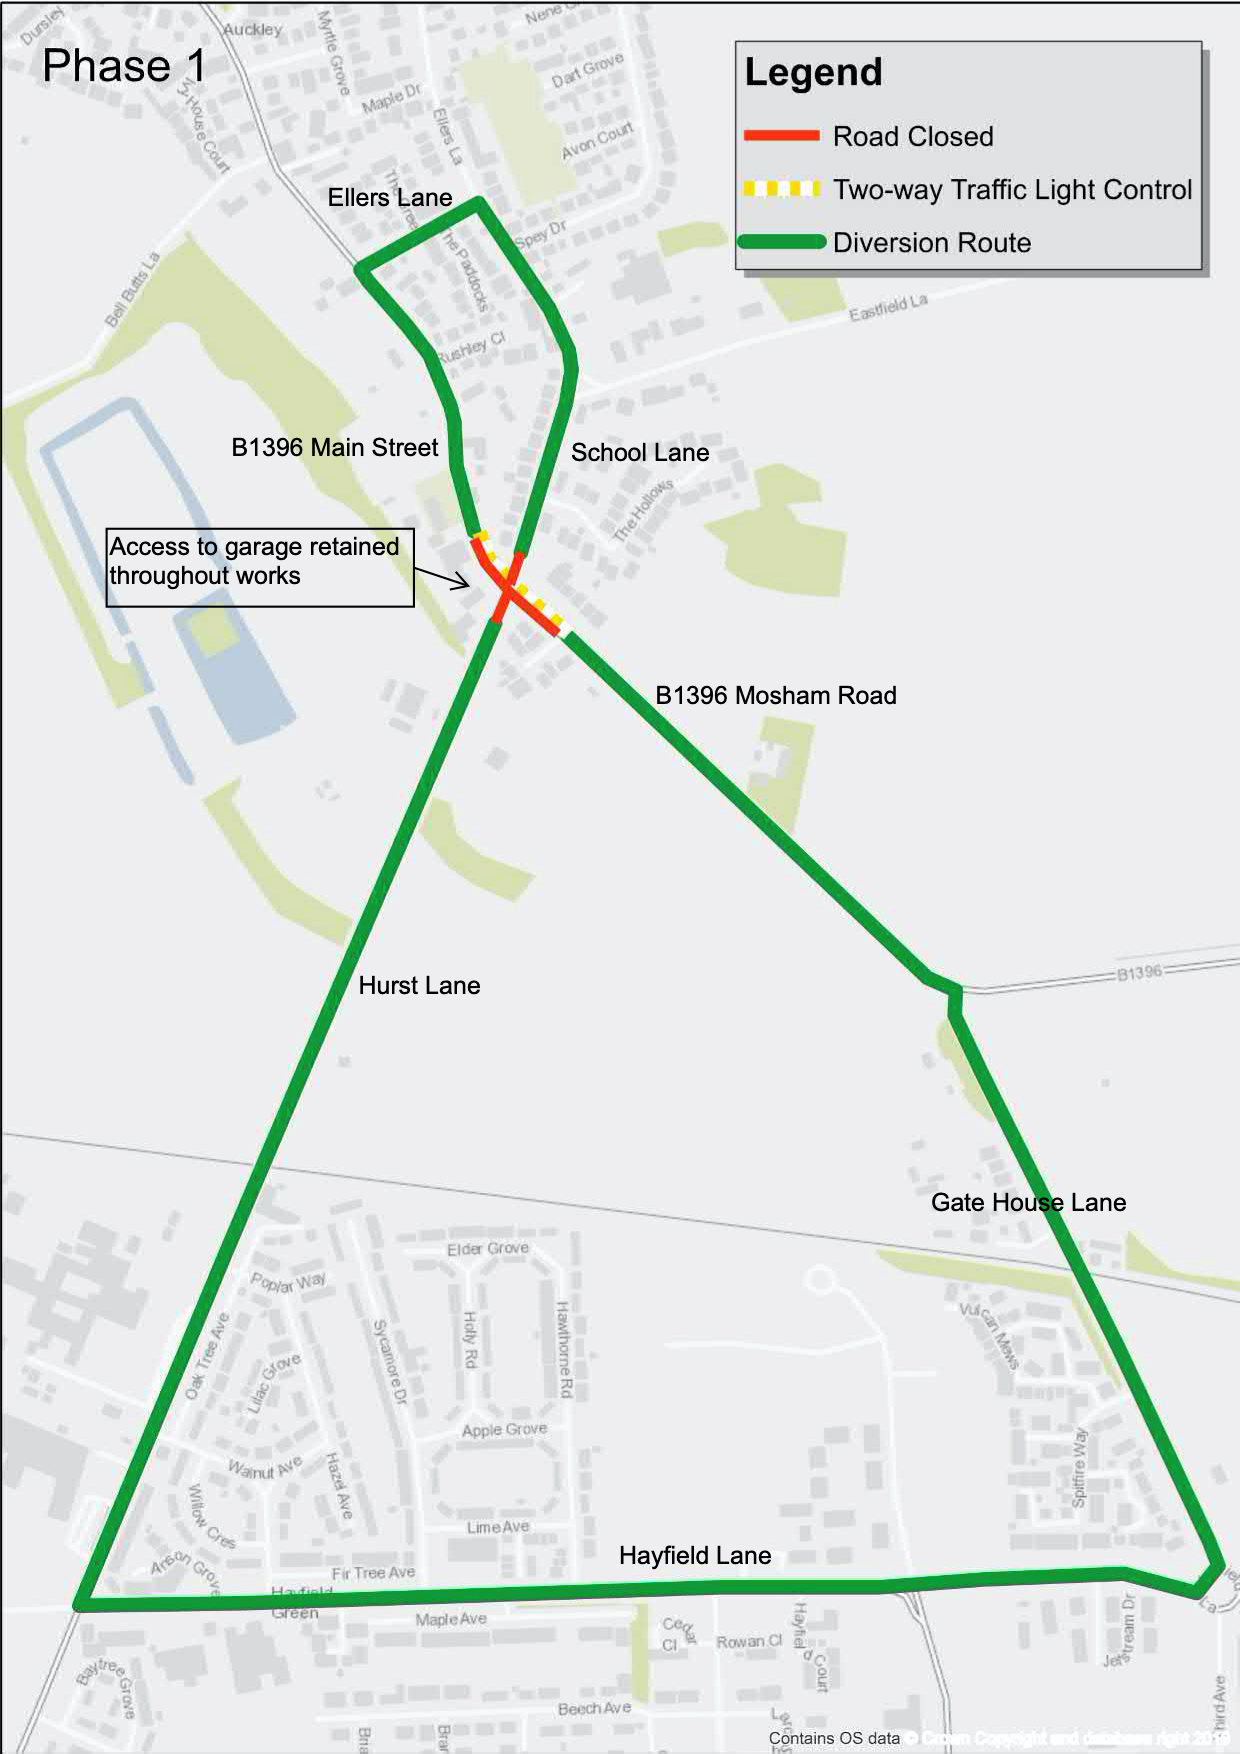 Road closure and Diversion for Hurst Lane and Mosham Road junction.